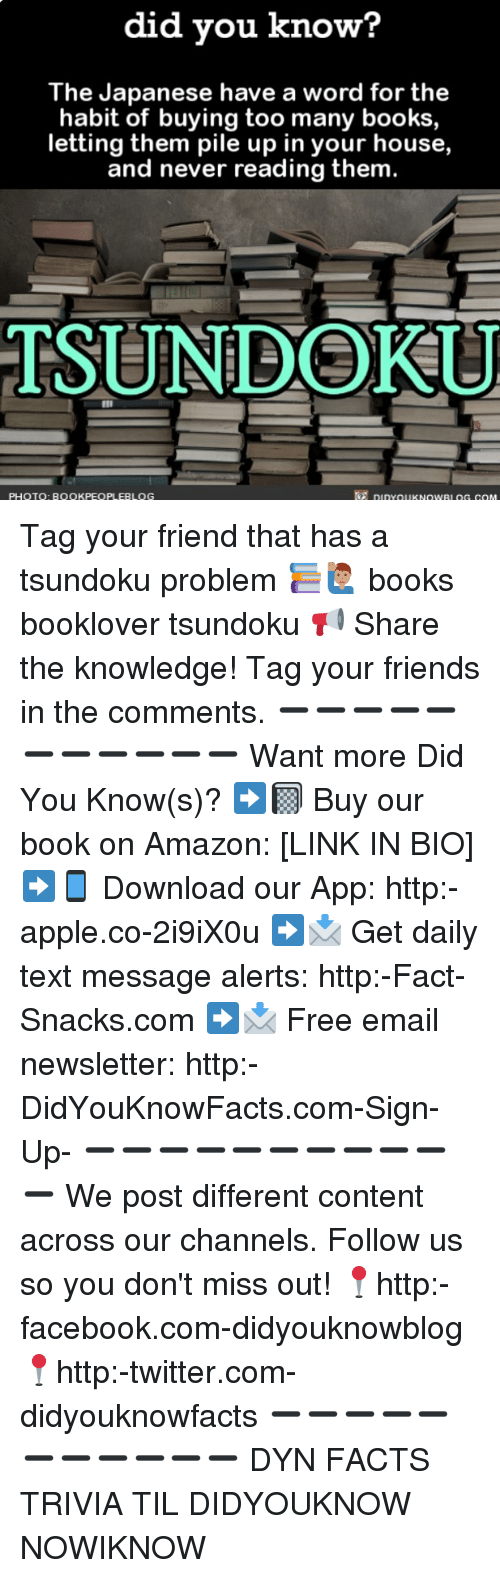 Habited: did you know?  The Japanese have a word for the  habit of buying too many books,  letting them pile up in your house,  and never reading them.  TSUNDOKU  PHOTOQ: BOOKPEOPLEBLOG  7 DiDYOUKNOWRL OG.COM Tag your friend that has a tsundoku problem 📚🙋🏽♂️ books booklover tsundoku 📢 Share the knowledge! Tag your friends in the comments. ➖➖➖➖➖➖➖➖➖➖➖ Want more Did You Know(s)? ➡📓 Buy our book on Amazon: [LINK IN BIO] ➡📱 Download our App: http:-apple.co-2i9iX0u ➡📩 Get daily text message alerts: http:-Fact-Snacks.com ➡📩 Free email newsletter: http:-DidYouKnowFacts.com-Sign-Up- ➖➖➖➖➖➖➖➖➖➖➖ We post different content across our channels. Follow us so you don't miss out! 📍http:-facebook.com-didyouknowblog 📍http:-twitter.com-didyouknowfacts ➖➖➖➖➖➖➖➖➖➖➖ DYN FACTS TRIVIA TIL DIDYOUKNOW NOWIKNOW